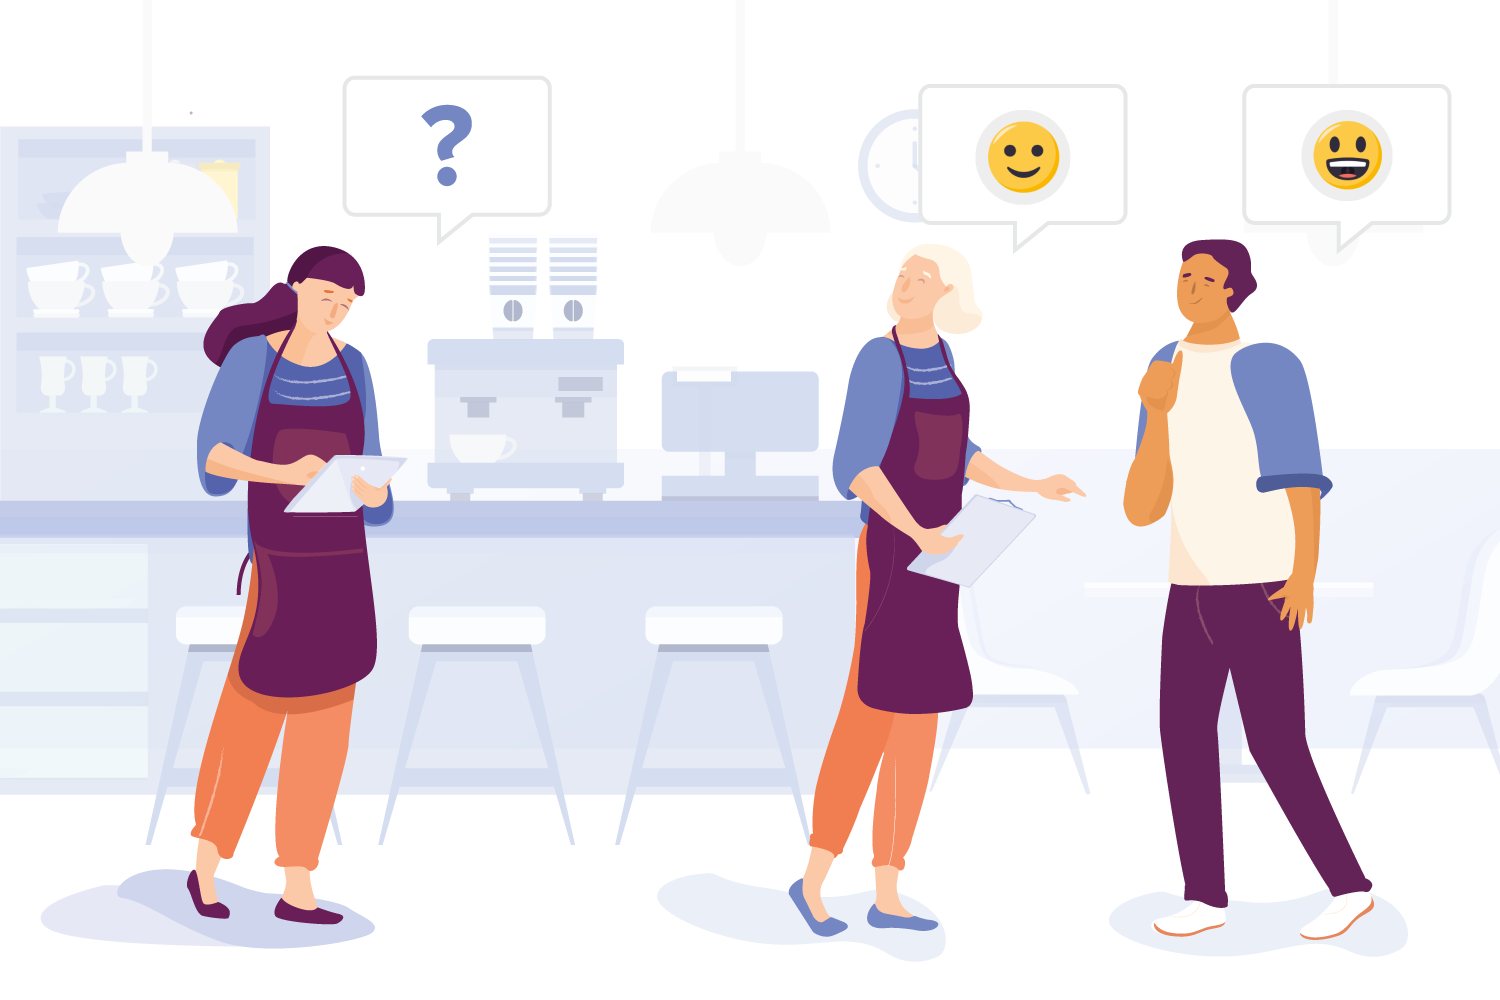 [Study] Is Workplace Happiness All About Pay? What 1,900+ Restaurant Staff Think